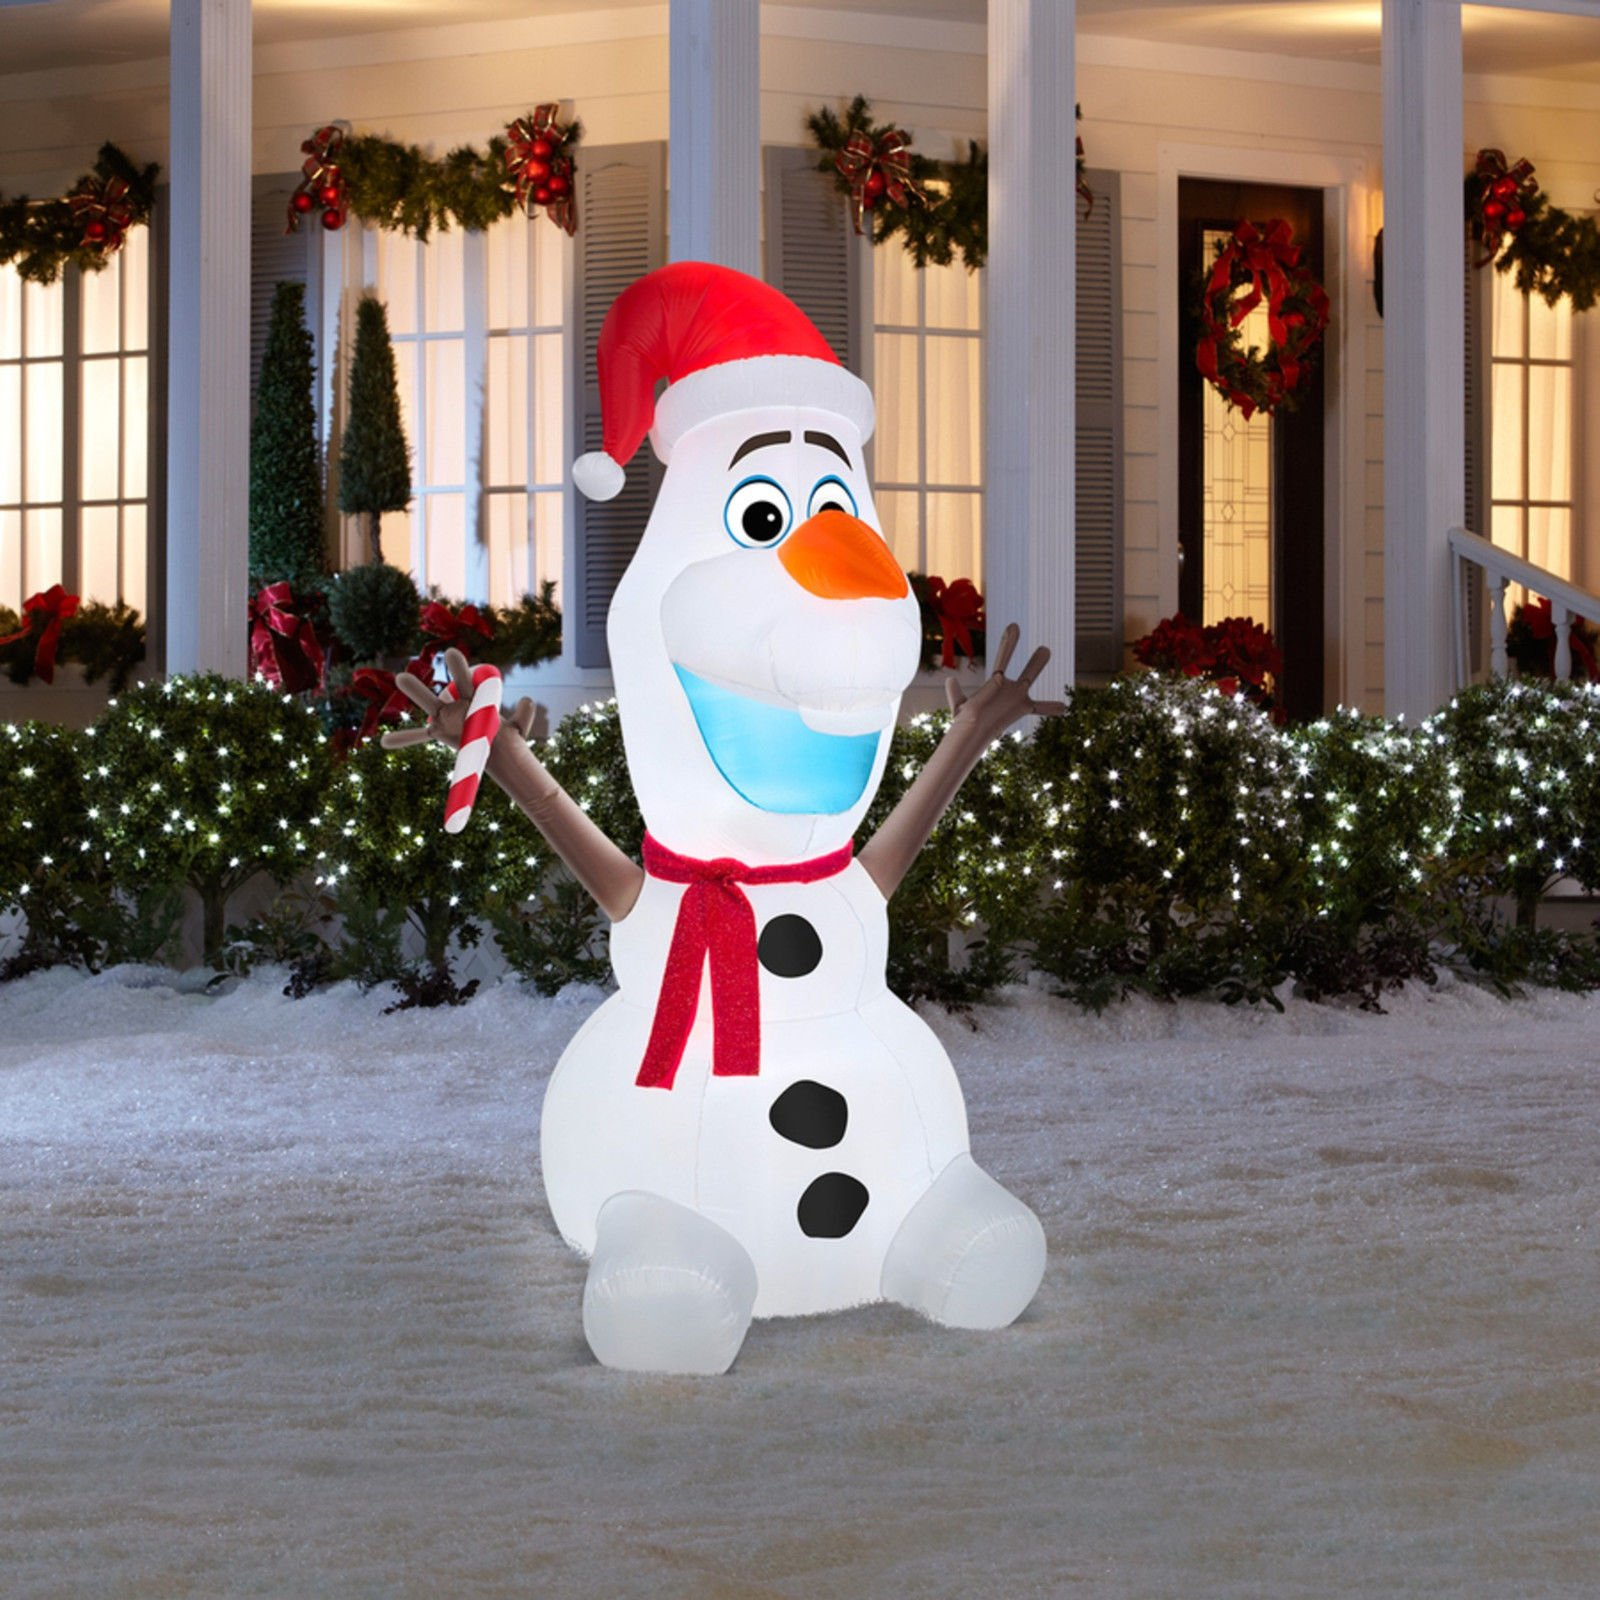 Gemmy Airblown Inflatable Olaf Wearing Santa Hat and Holding Candy Cane, Christmas Yard Decoration Props, 6-foot Tall by Gemmy (Image #2)